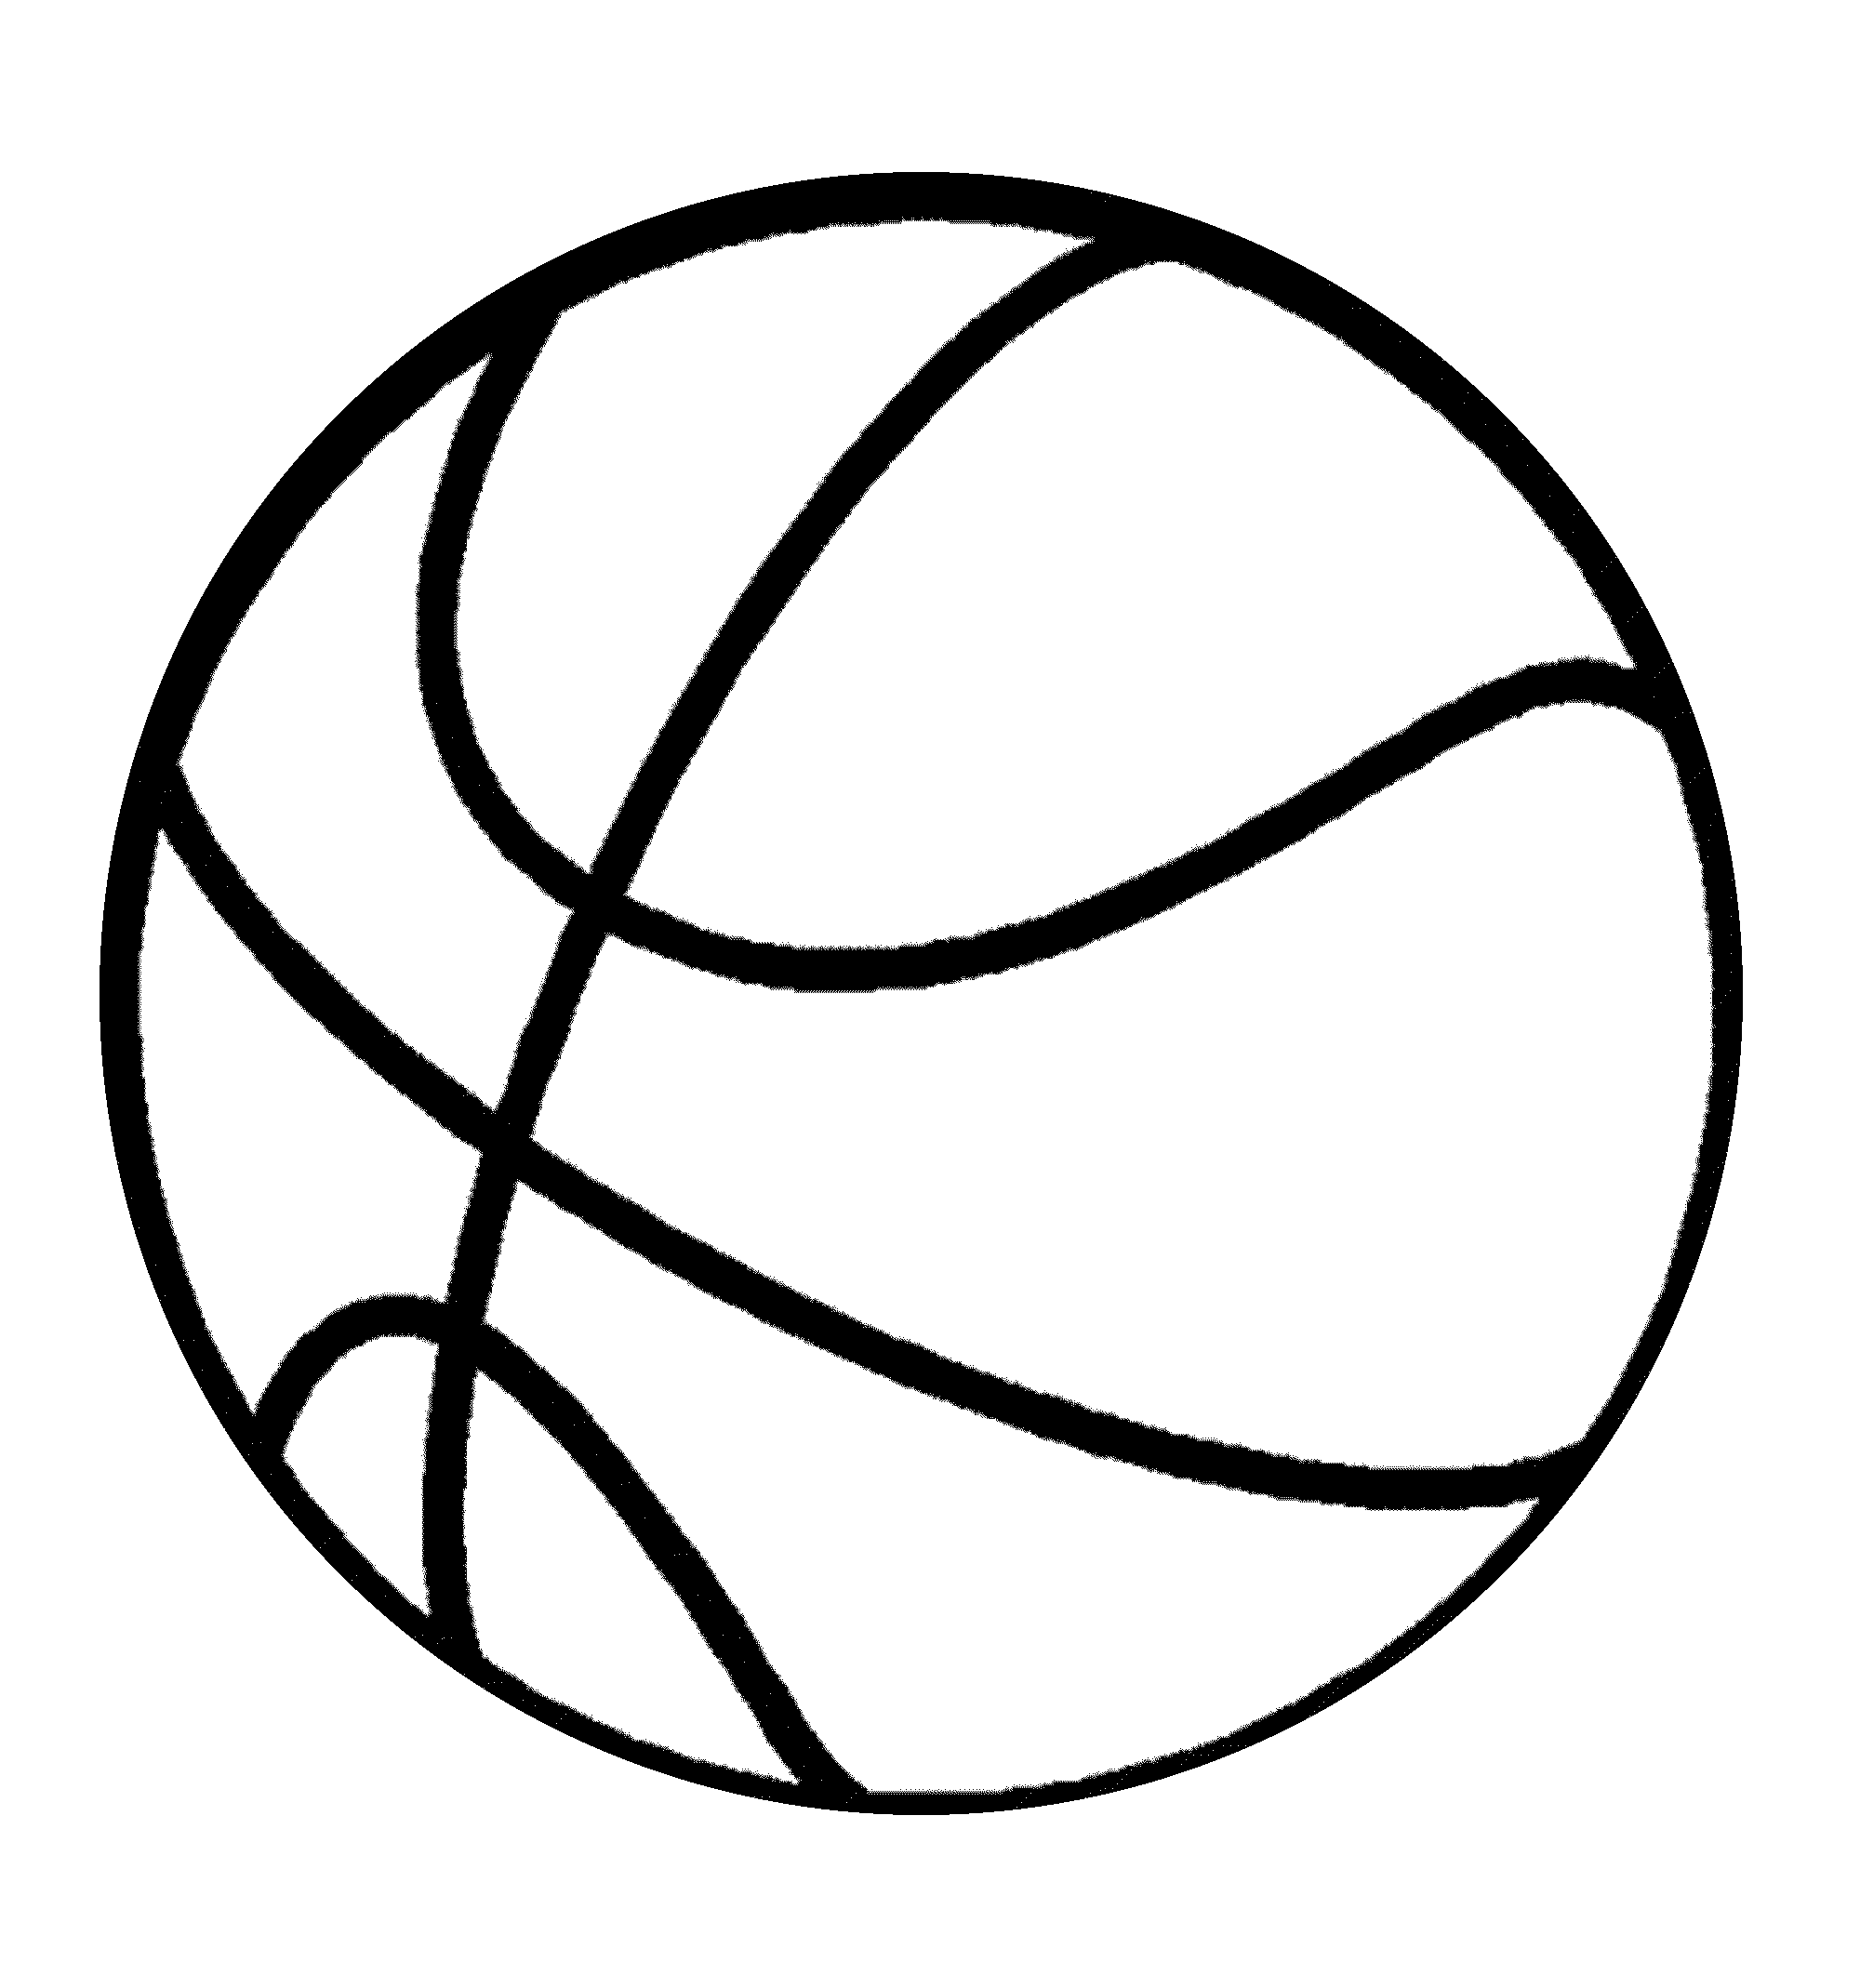 basketball pictures to color basketball to color for kids basketball kids coloring pages color basketball pictures to